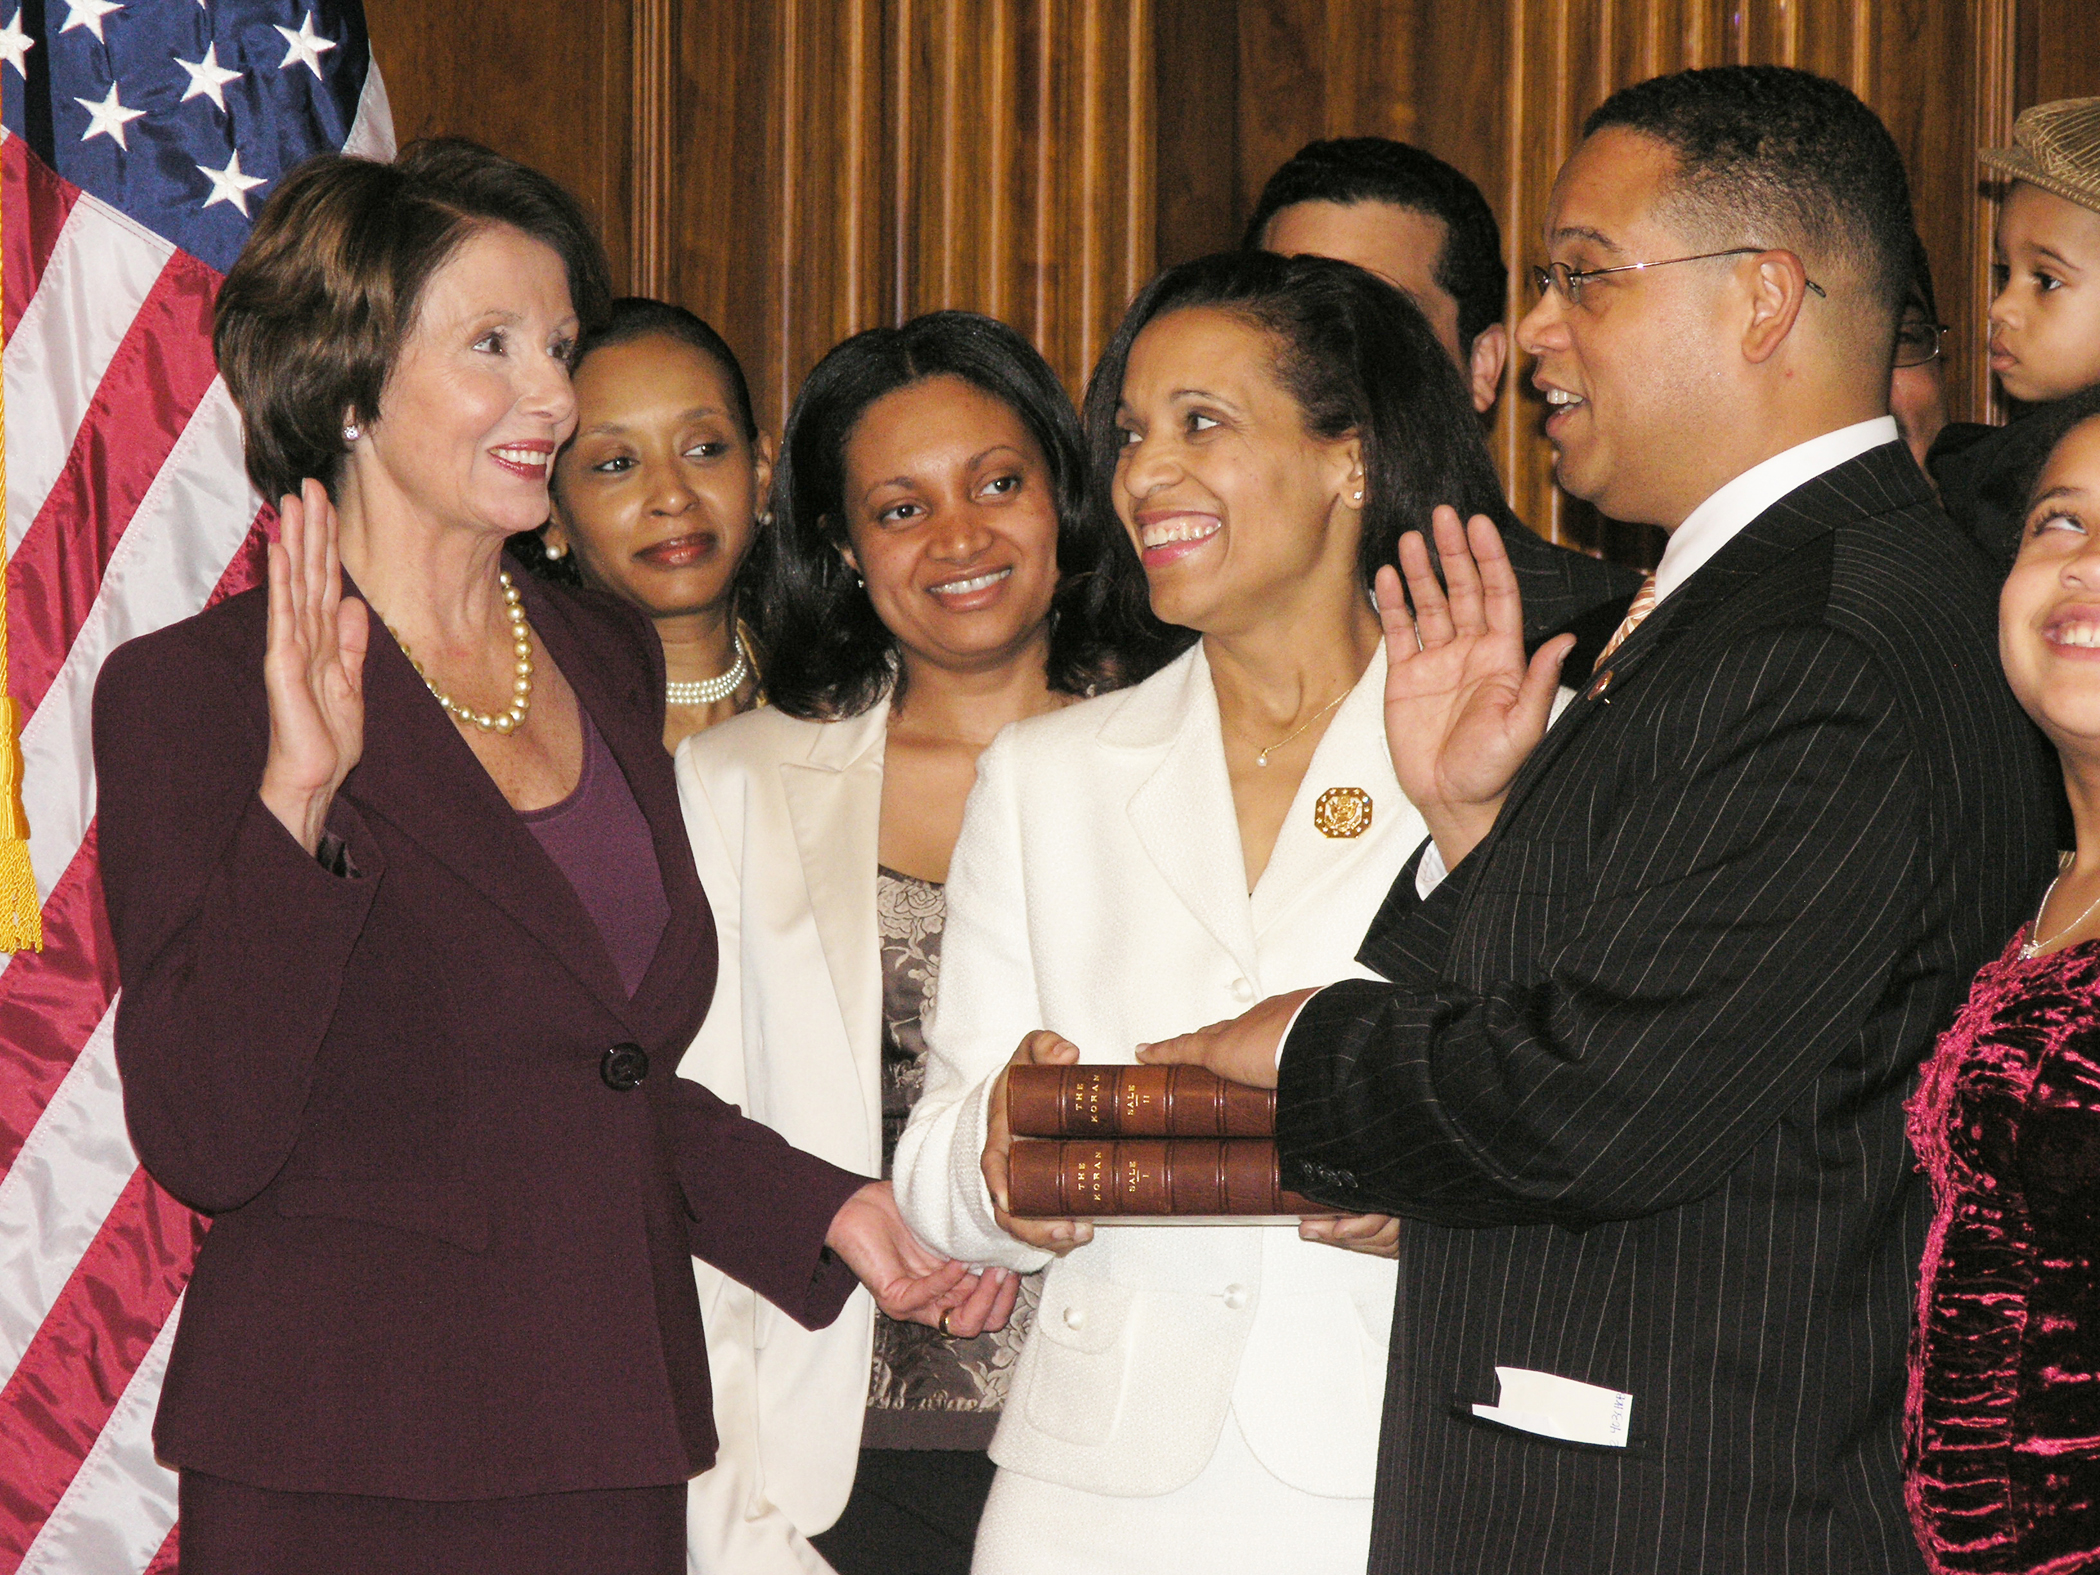 Ex-House Speaker Nancy Pelosi (left) swearing Congressman Ellison's with Jefferson's Qur'an, January 2007